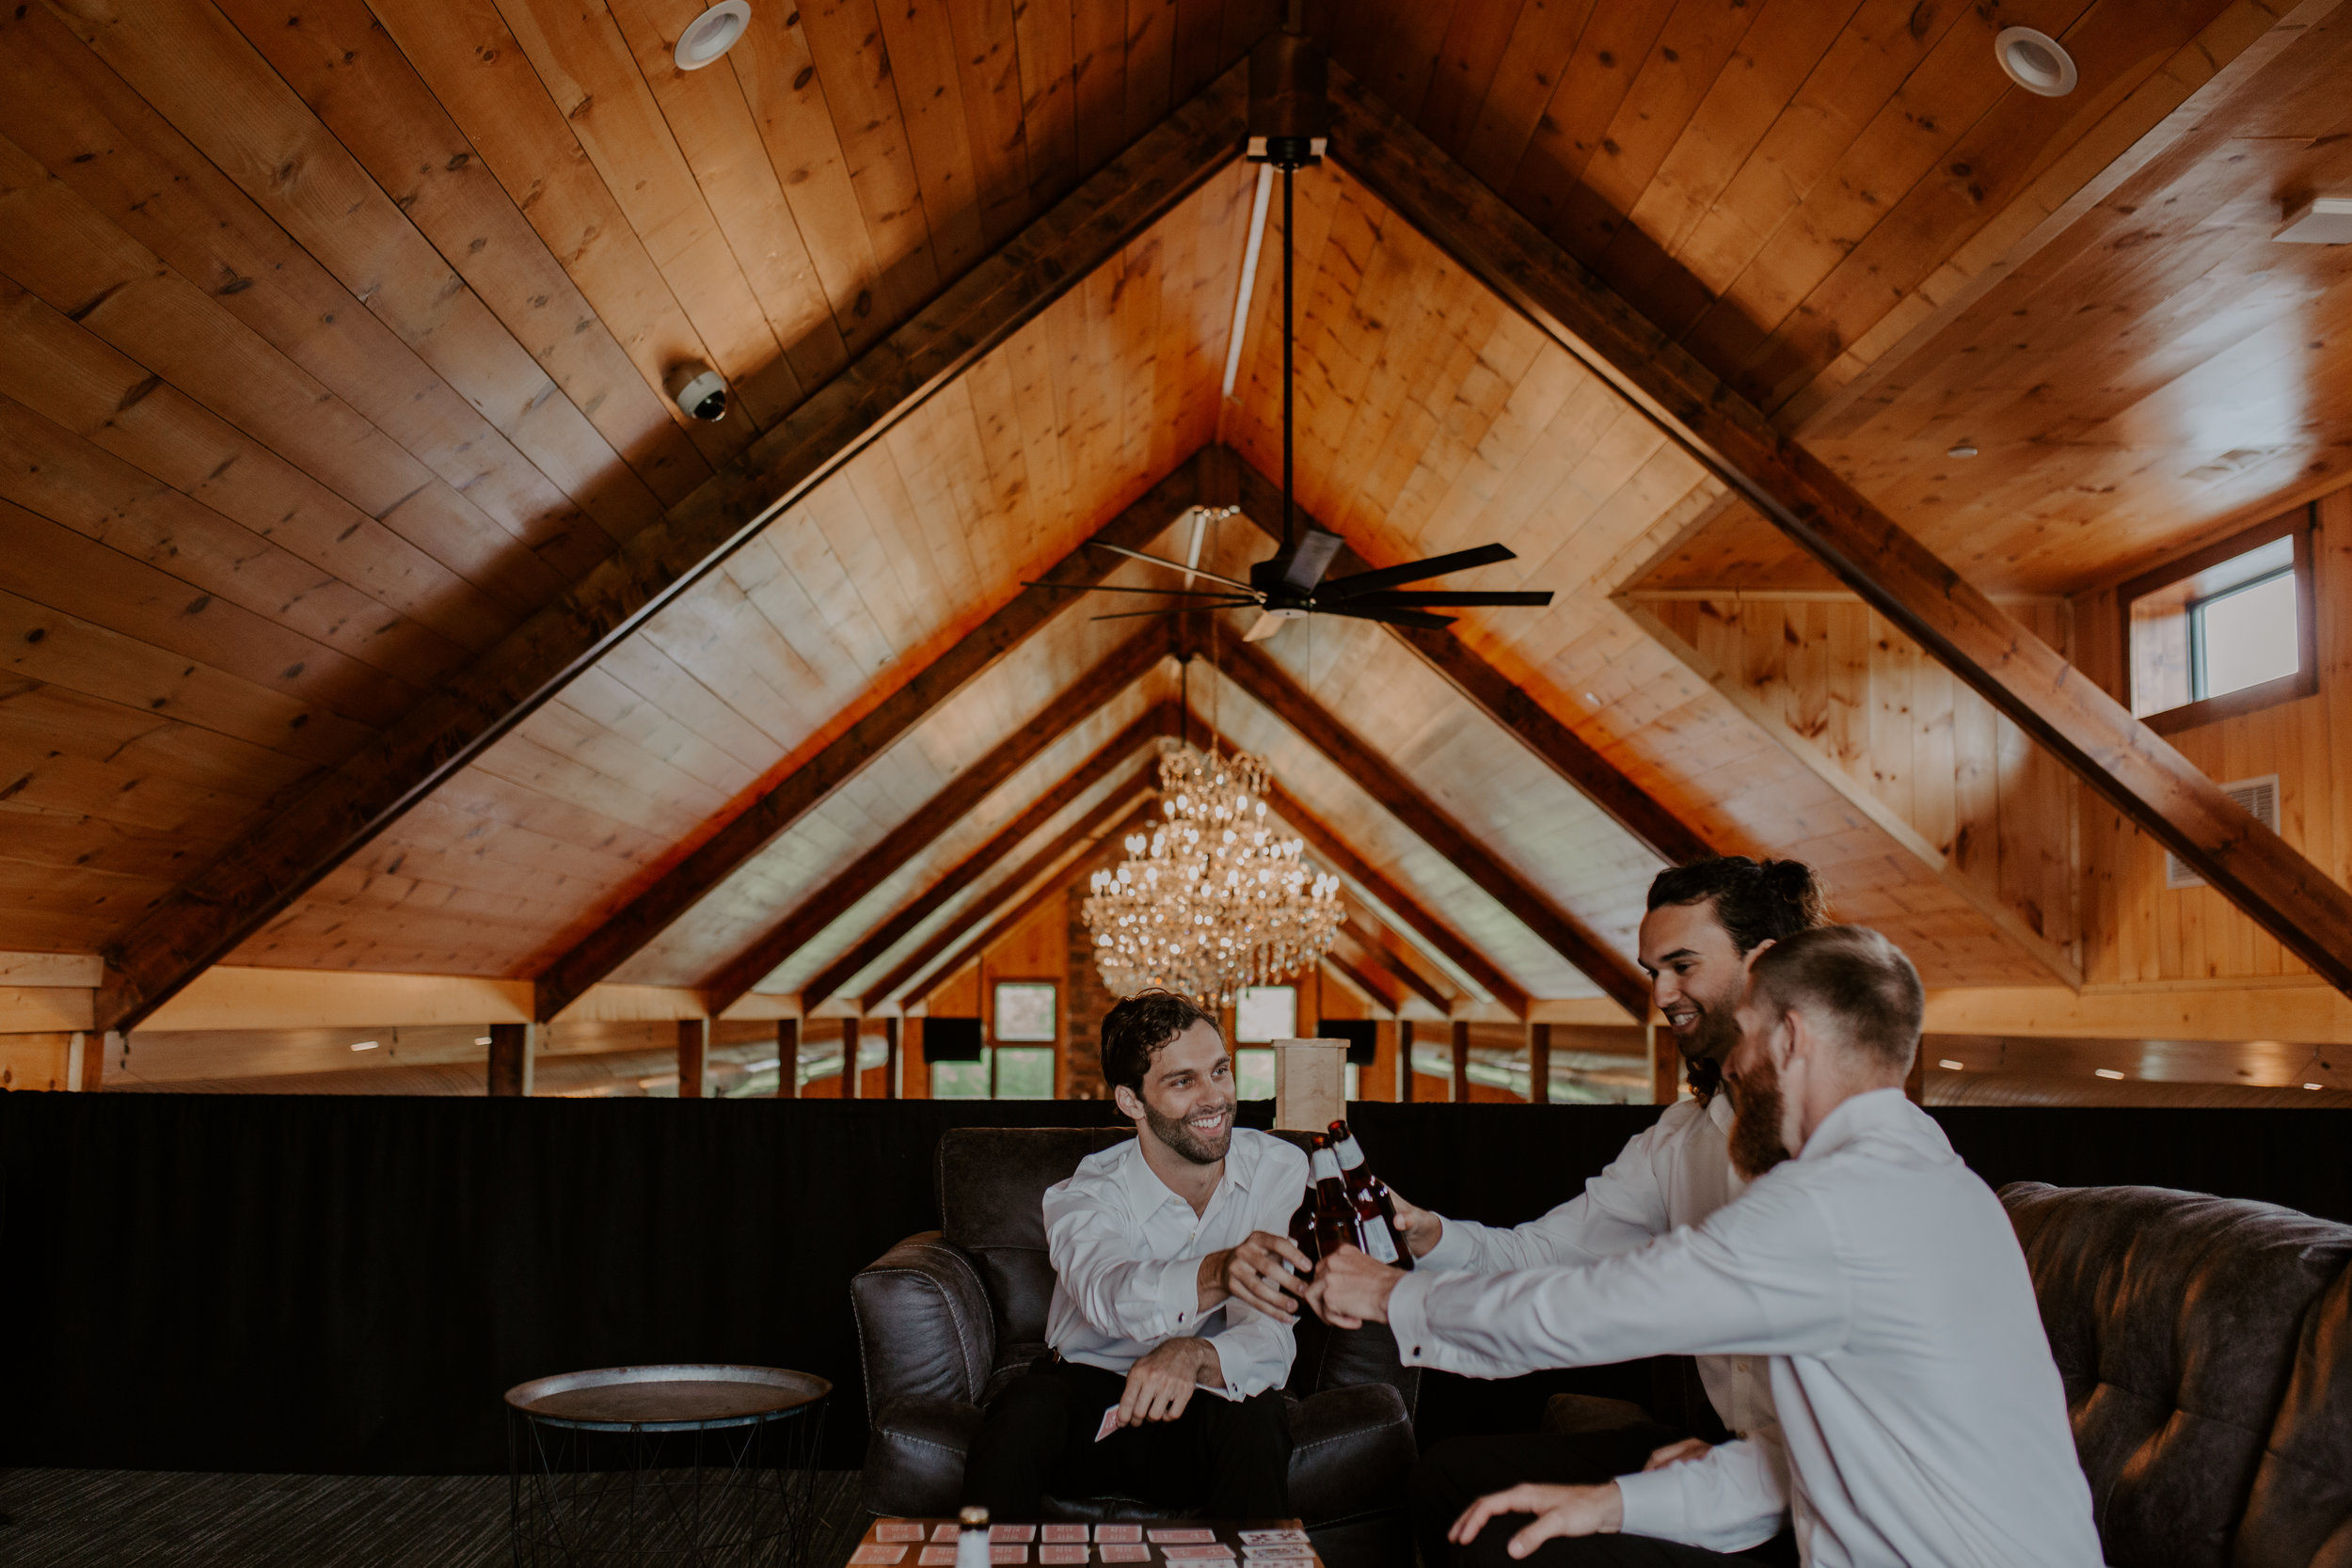 groomsmen playing cards in room where they are getting ready for wedding and having a drink and smiling